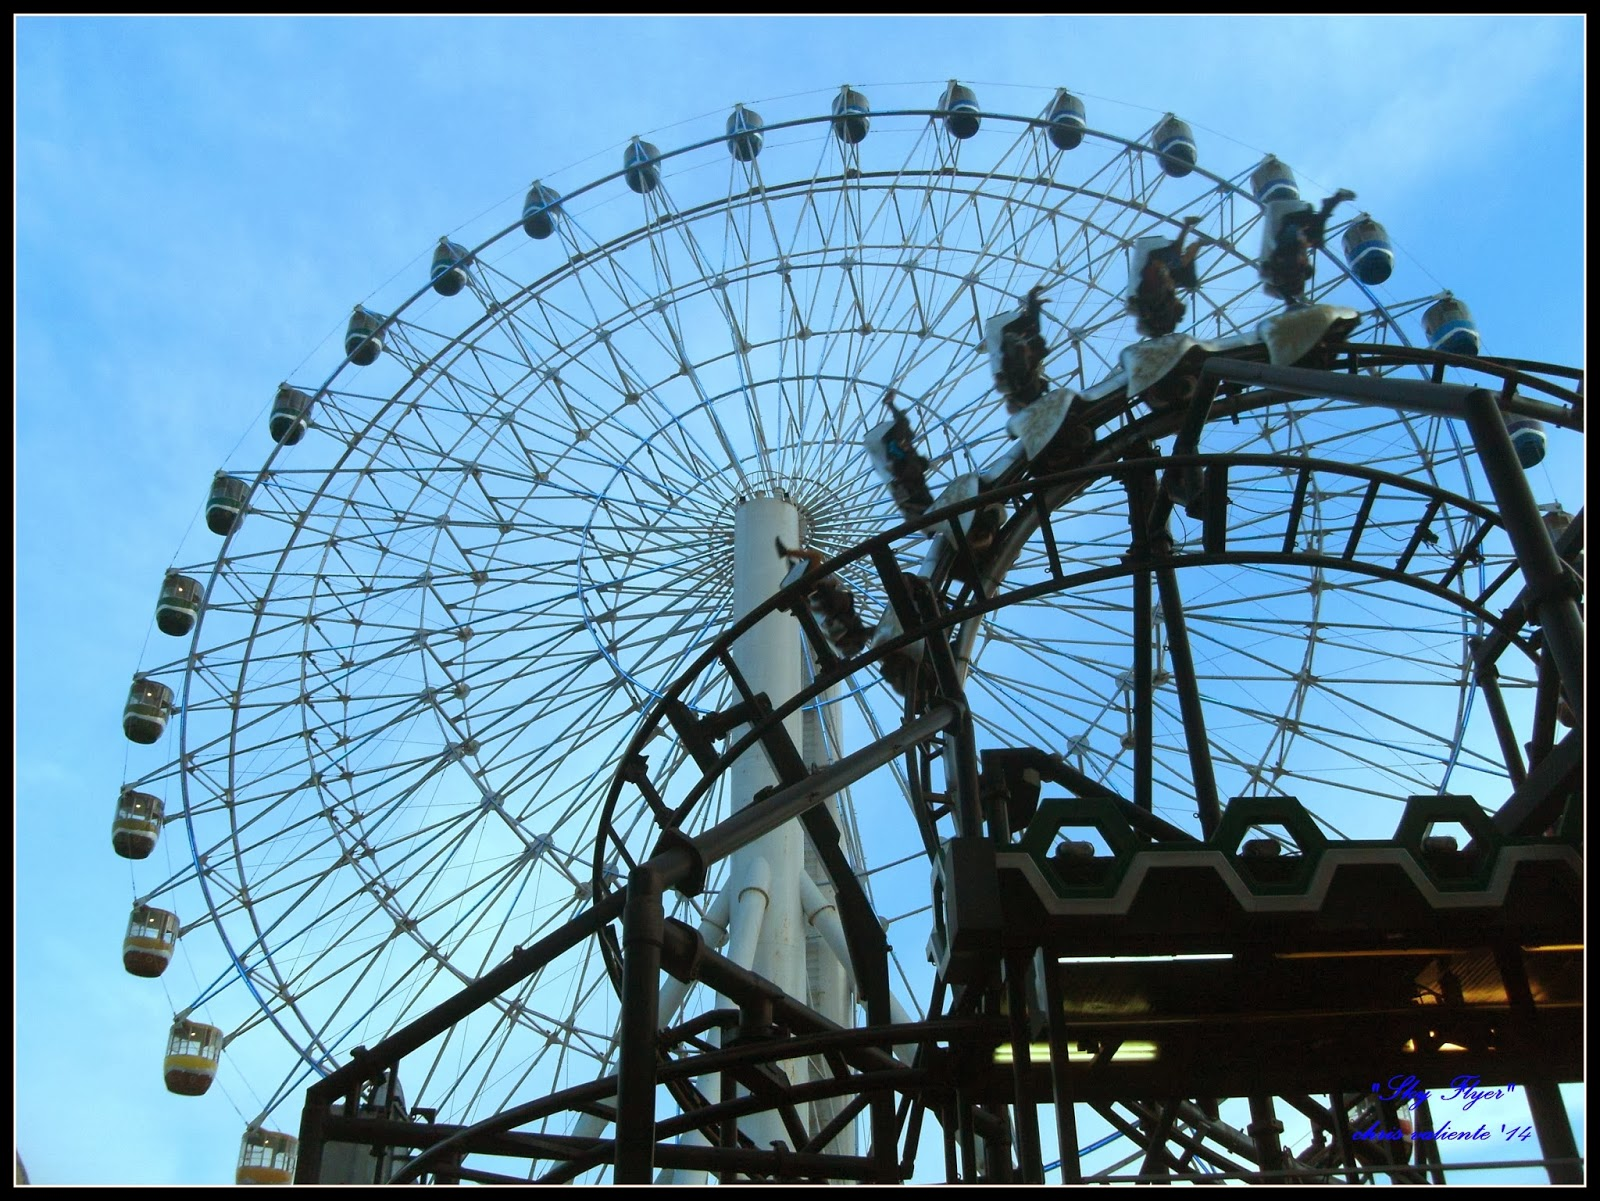 star city pasay Hotels near star city, pasay on tripadvisor: find 76,630 traveller reviews, 2,593 candid photos, and prices for 189 hotels near star city in pasay, philippines.